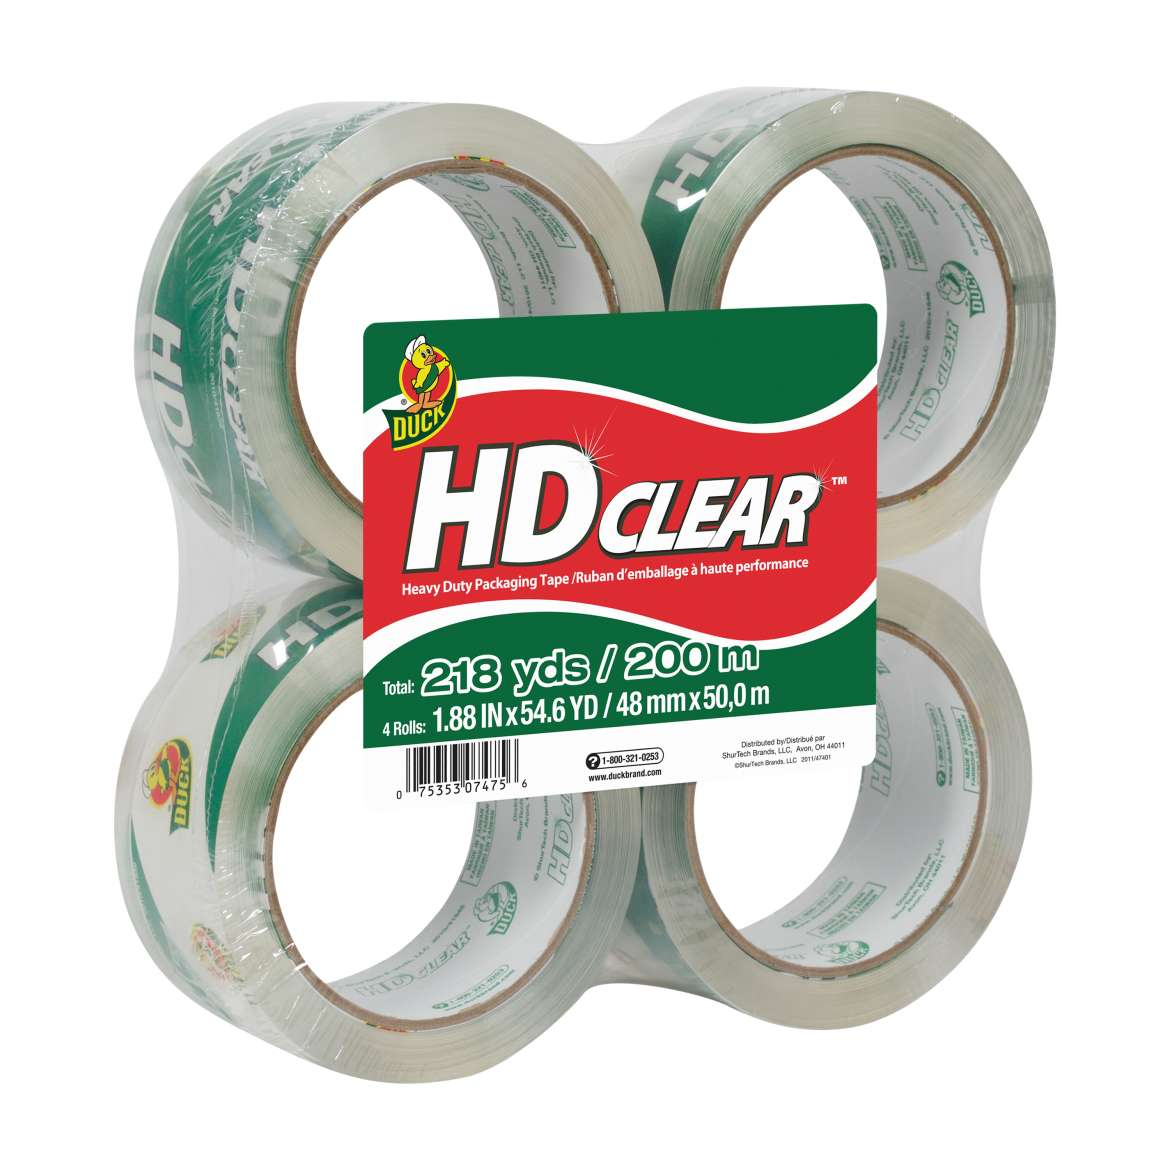 HD Clear™ Heavy Duty Packaging Tape - Clear, 4 pk, 1.88 in. x 54.6 yd. Image